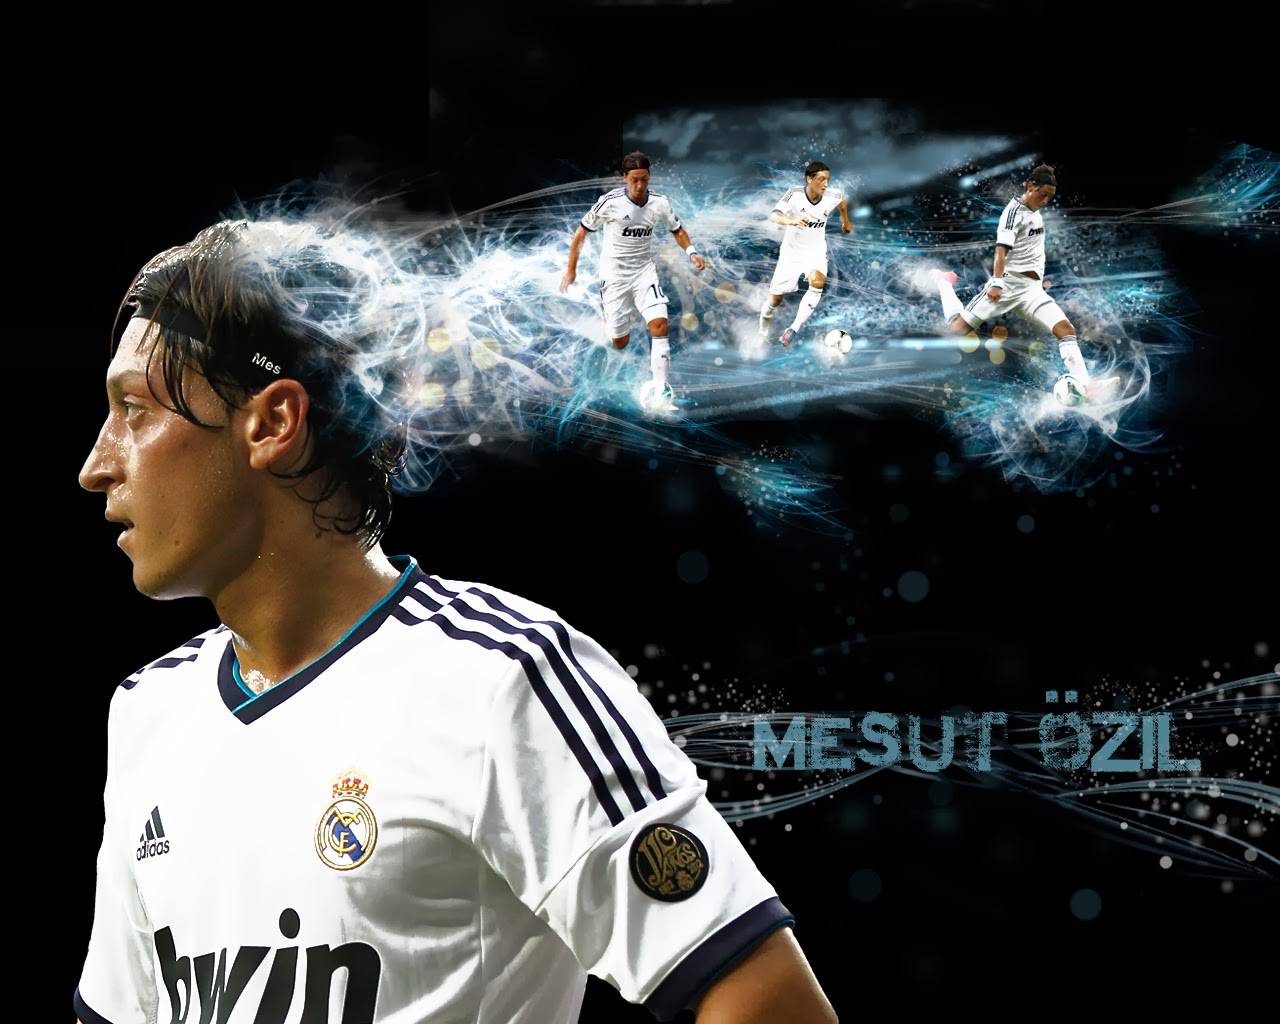 Mesut Özil New HD Wallpapers 2013-2014